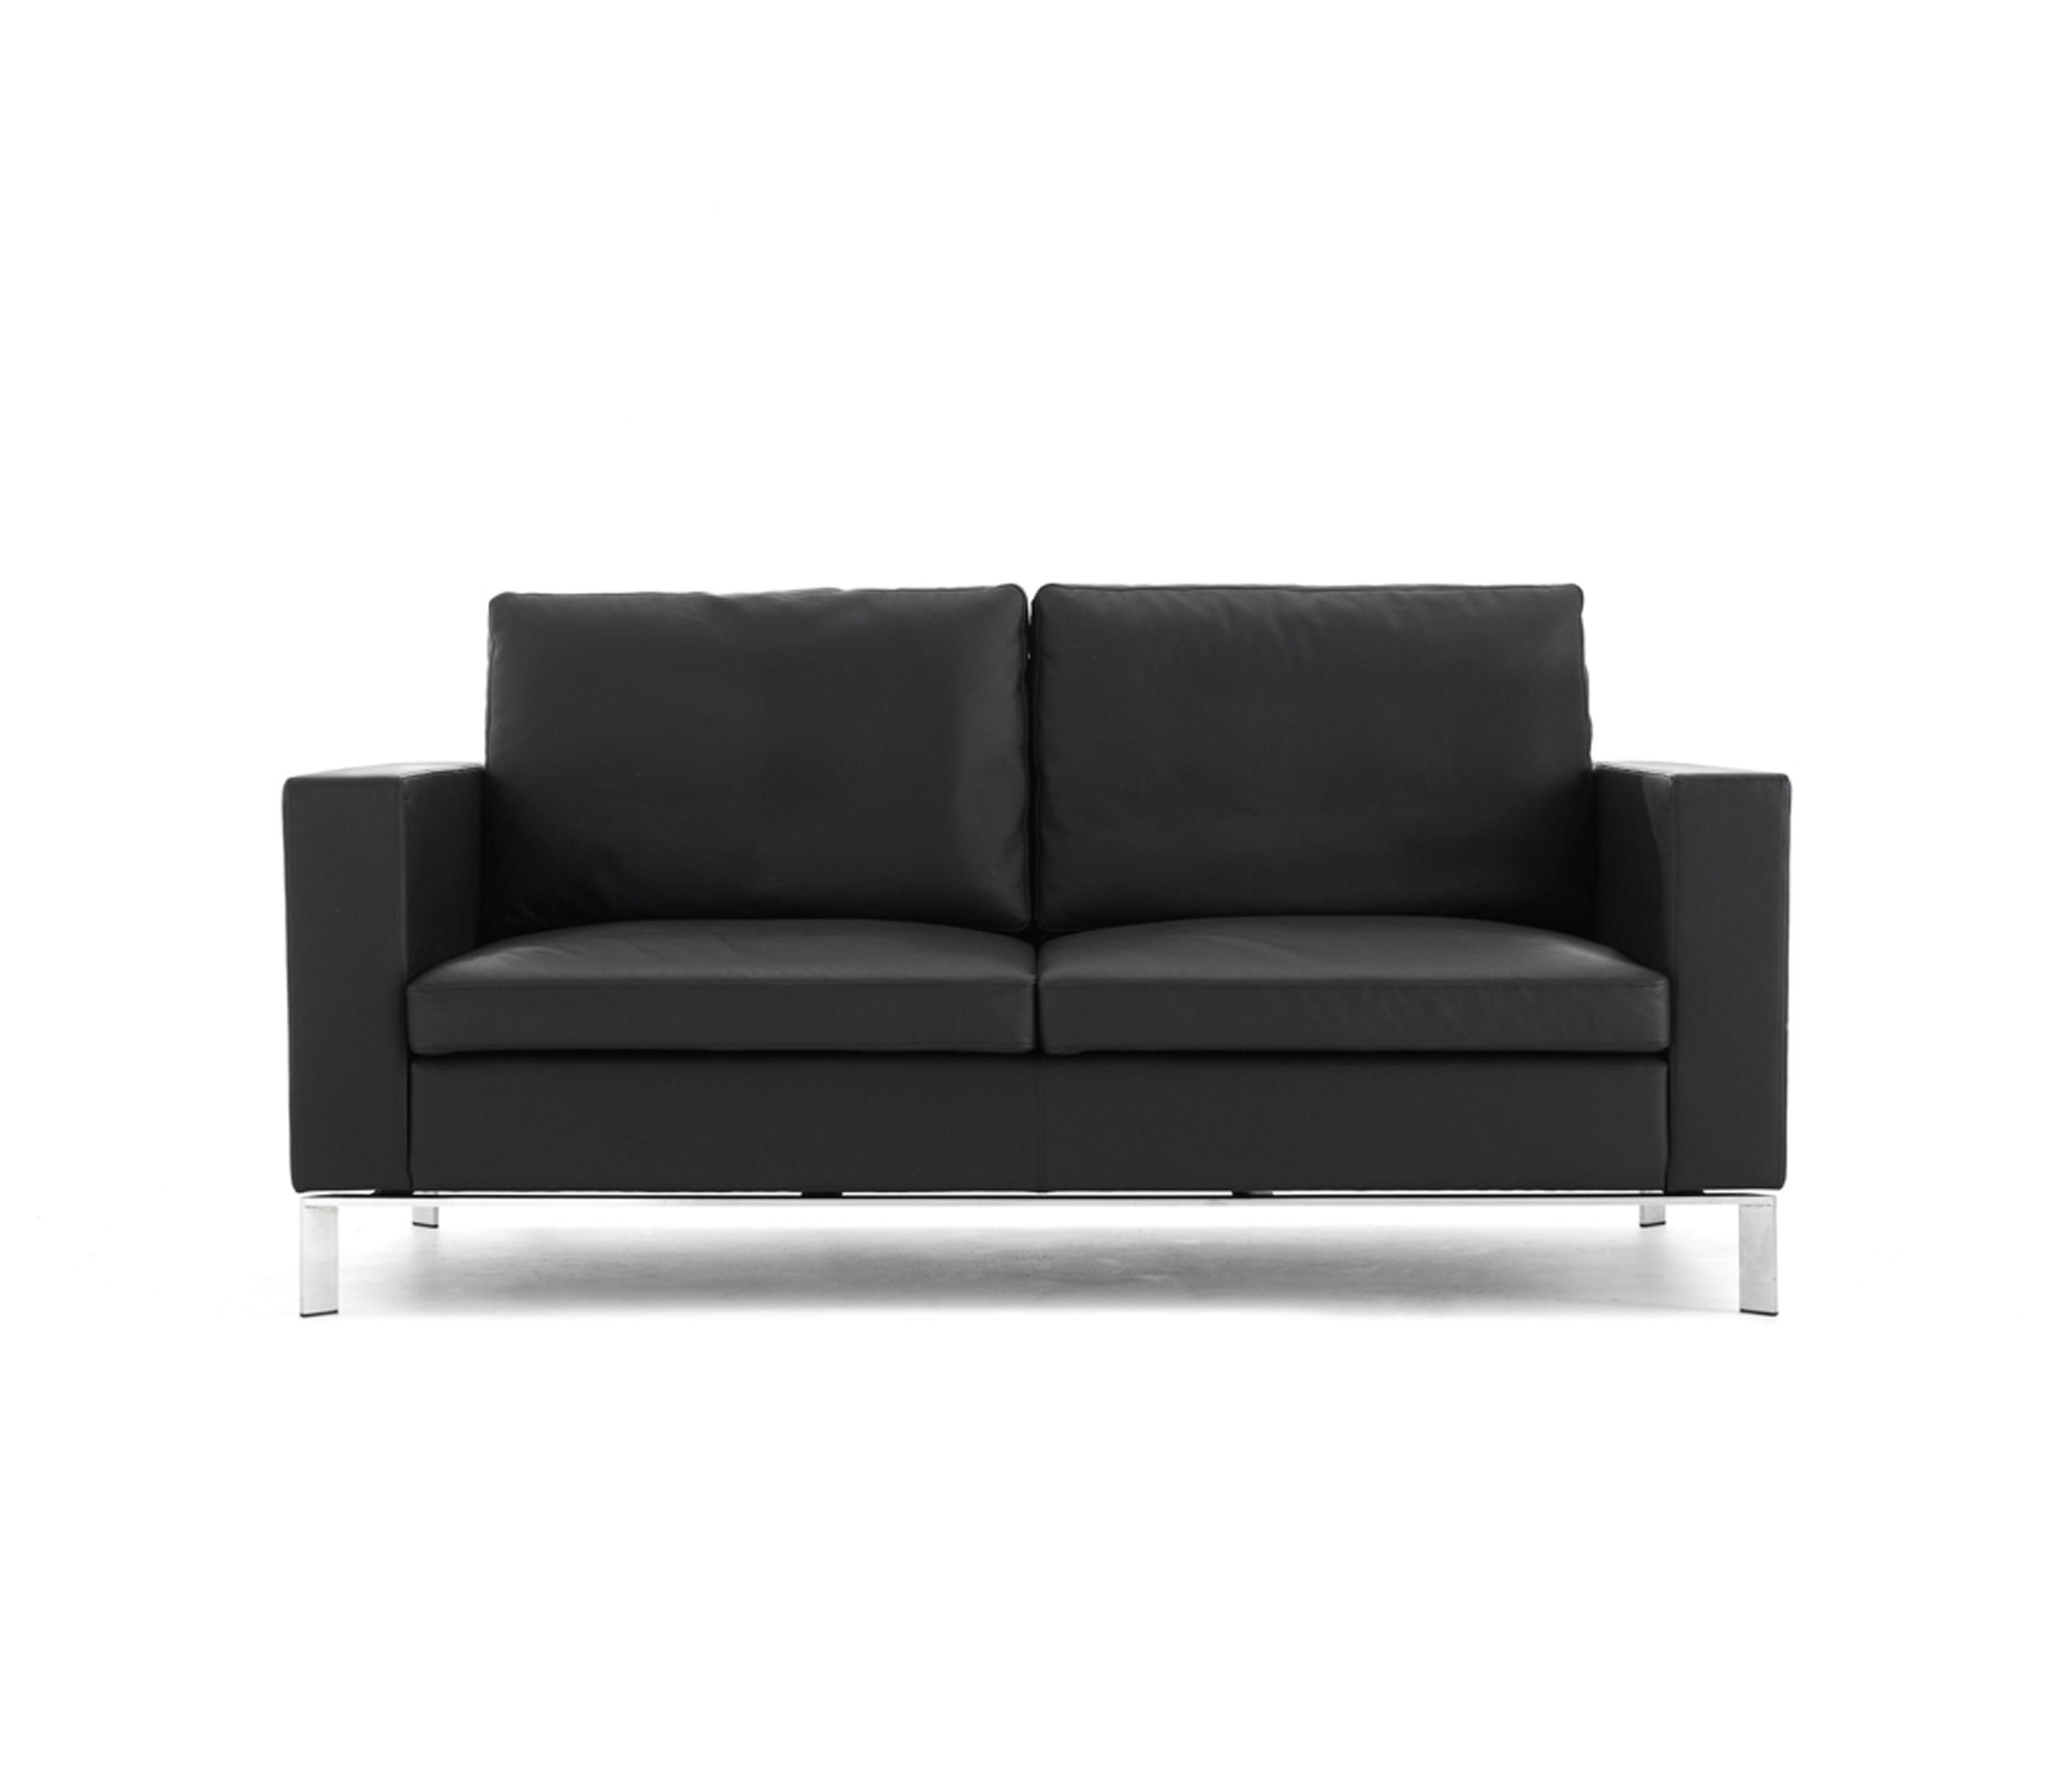 sofa connection memphis made in usa leather reclining stirling brokeasshome